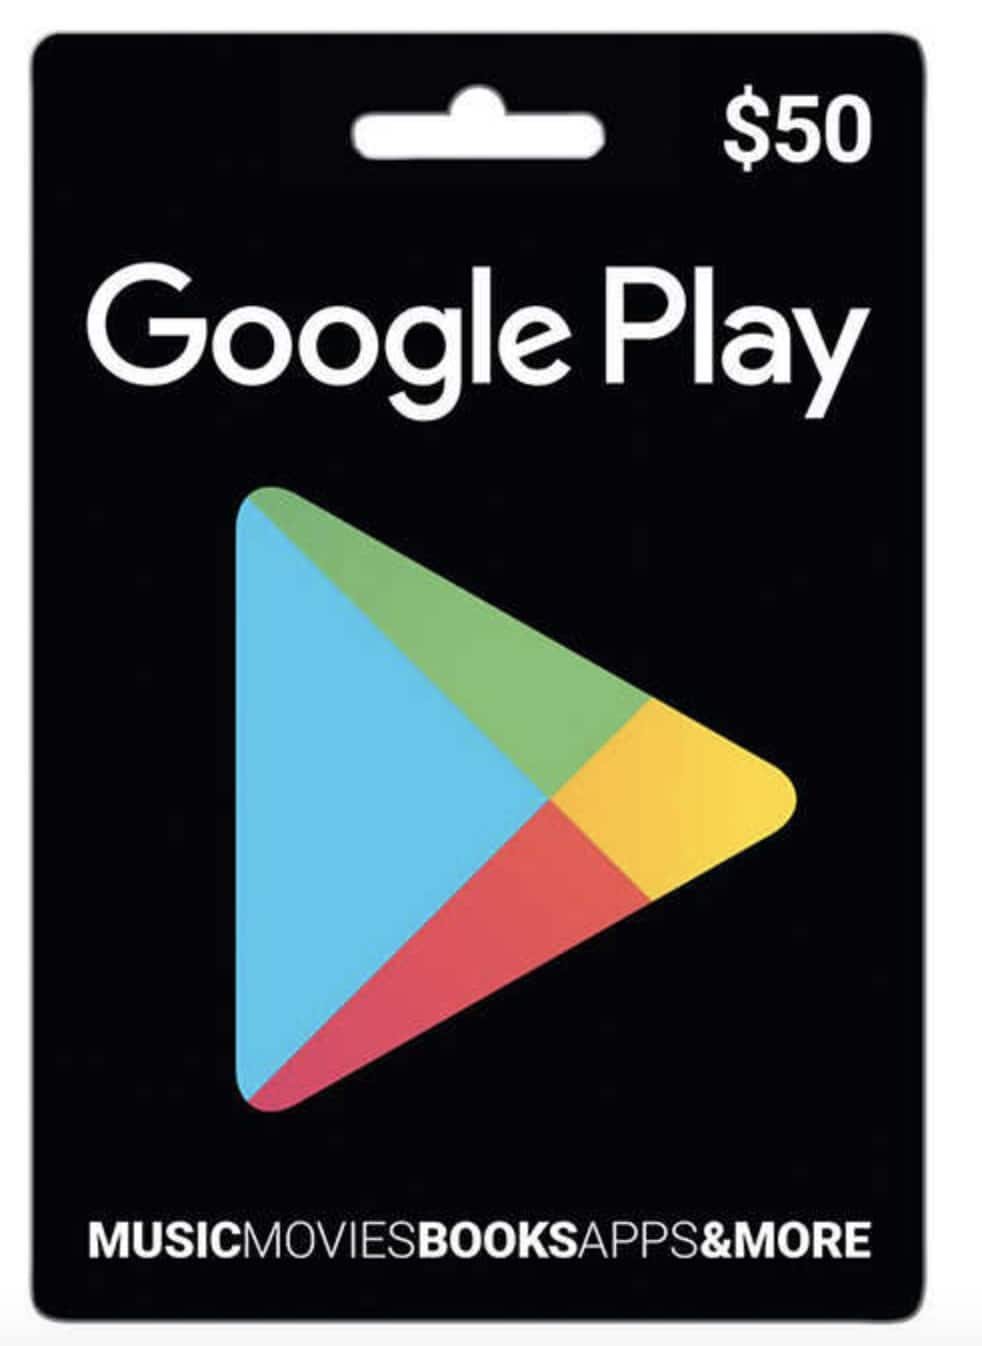 $50 Google Play Physical Gift Card for $44 + Free Shipping